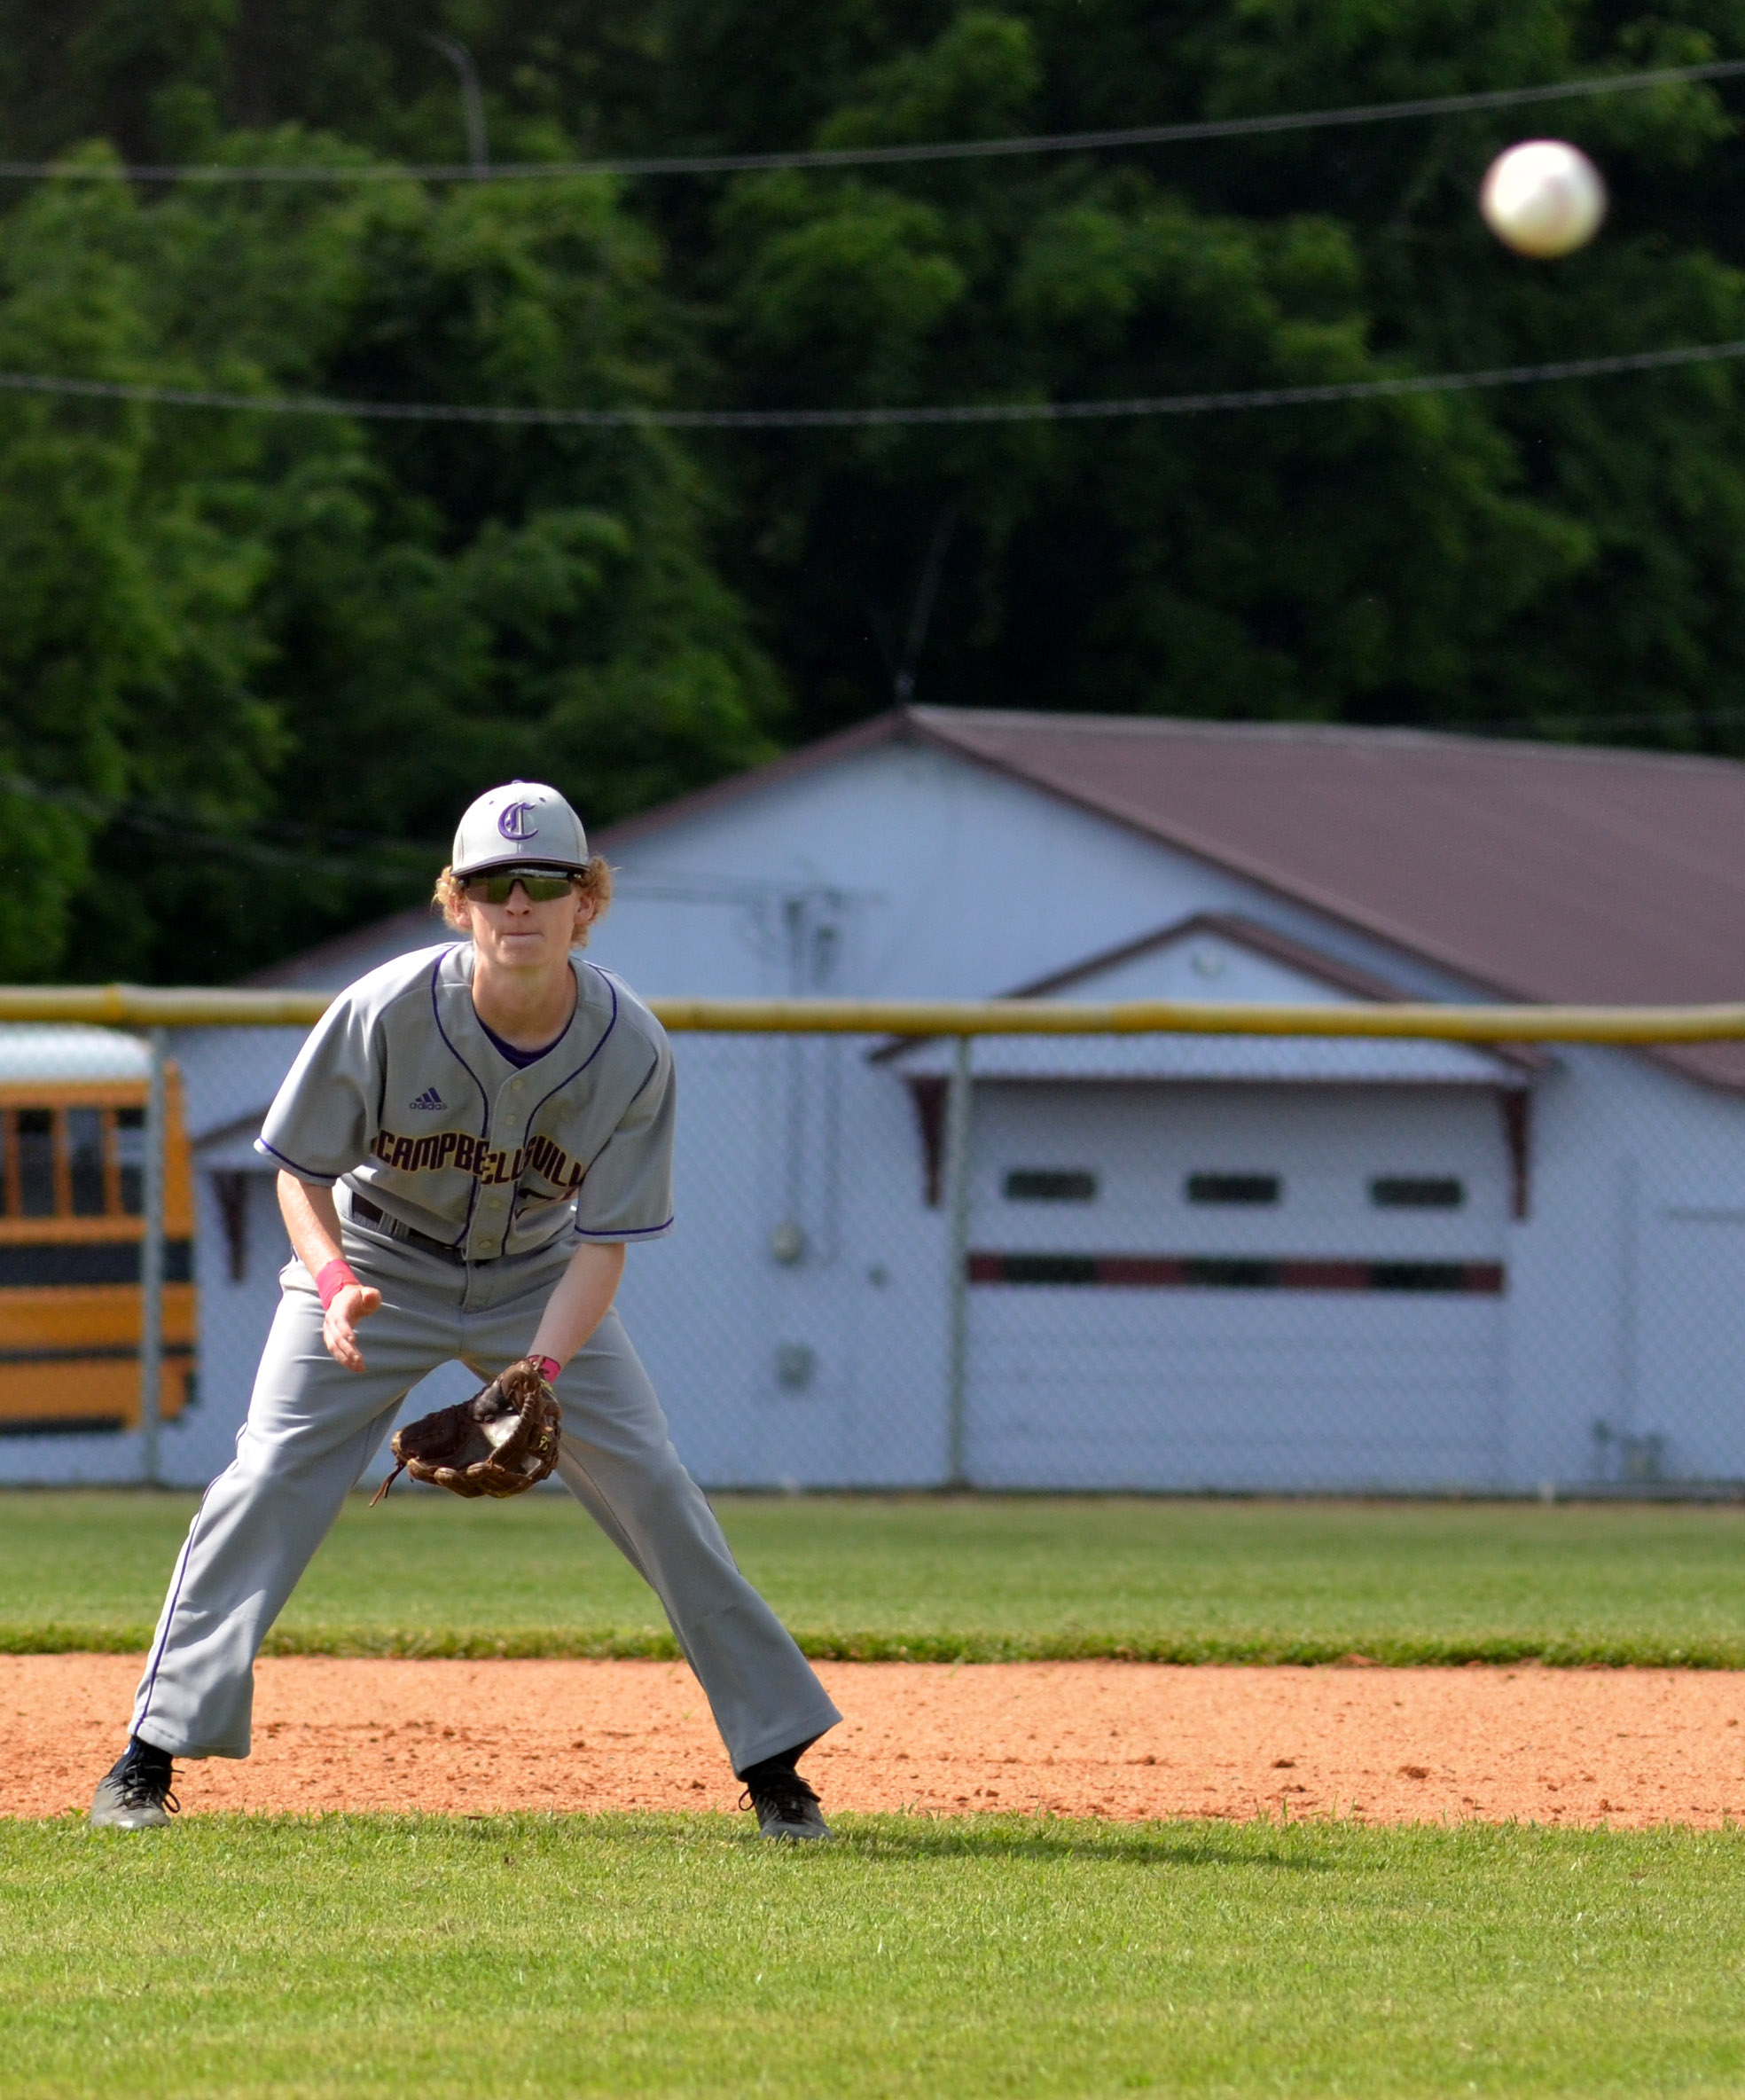 CHS sophomore Jackson Hinton watches the pitch.